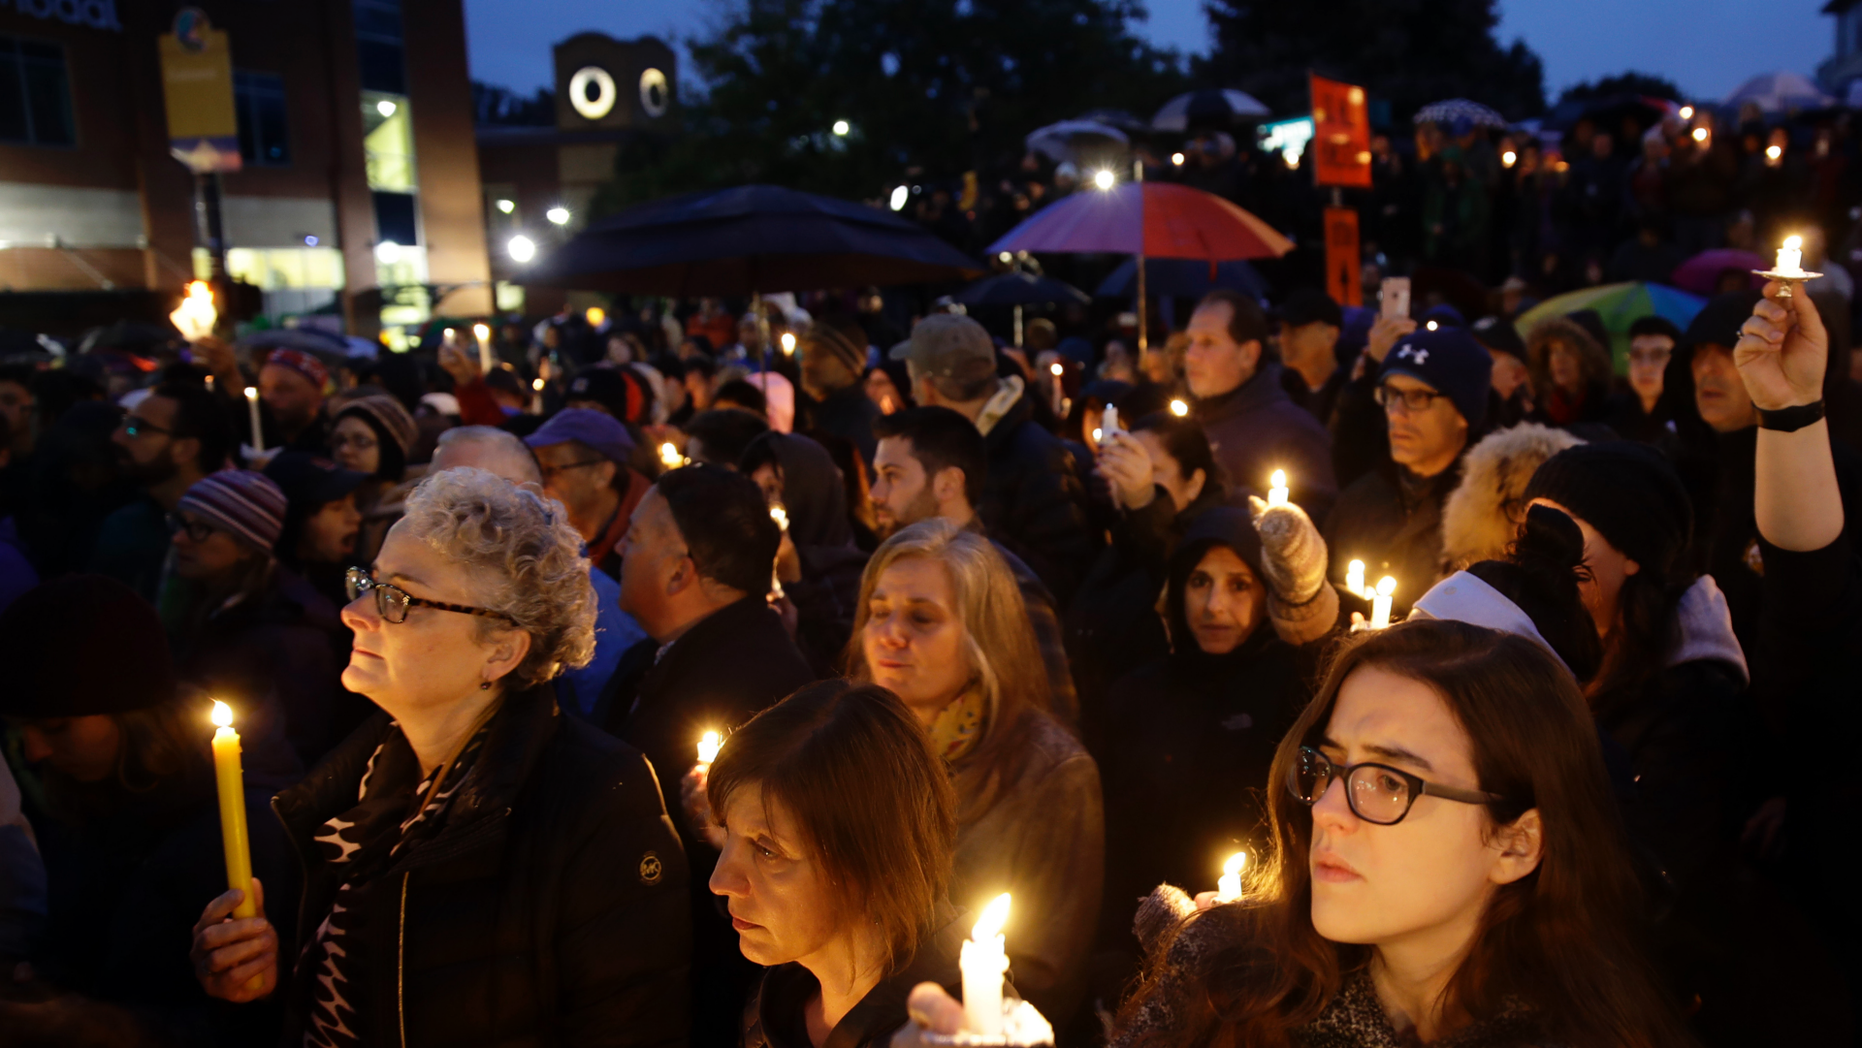 Messages Of Solidarity From Prominent Jews Following Pittsburgh Shooting